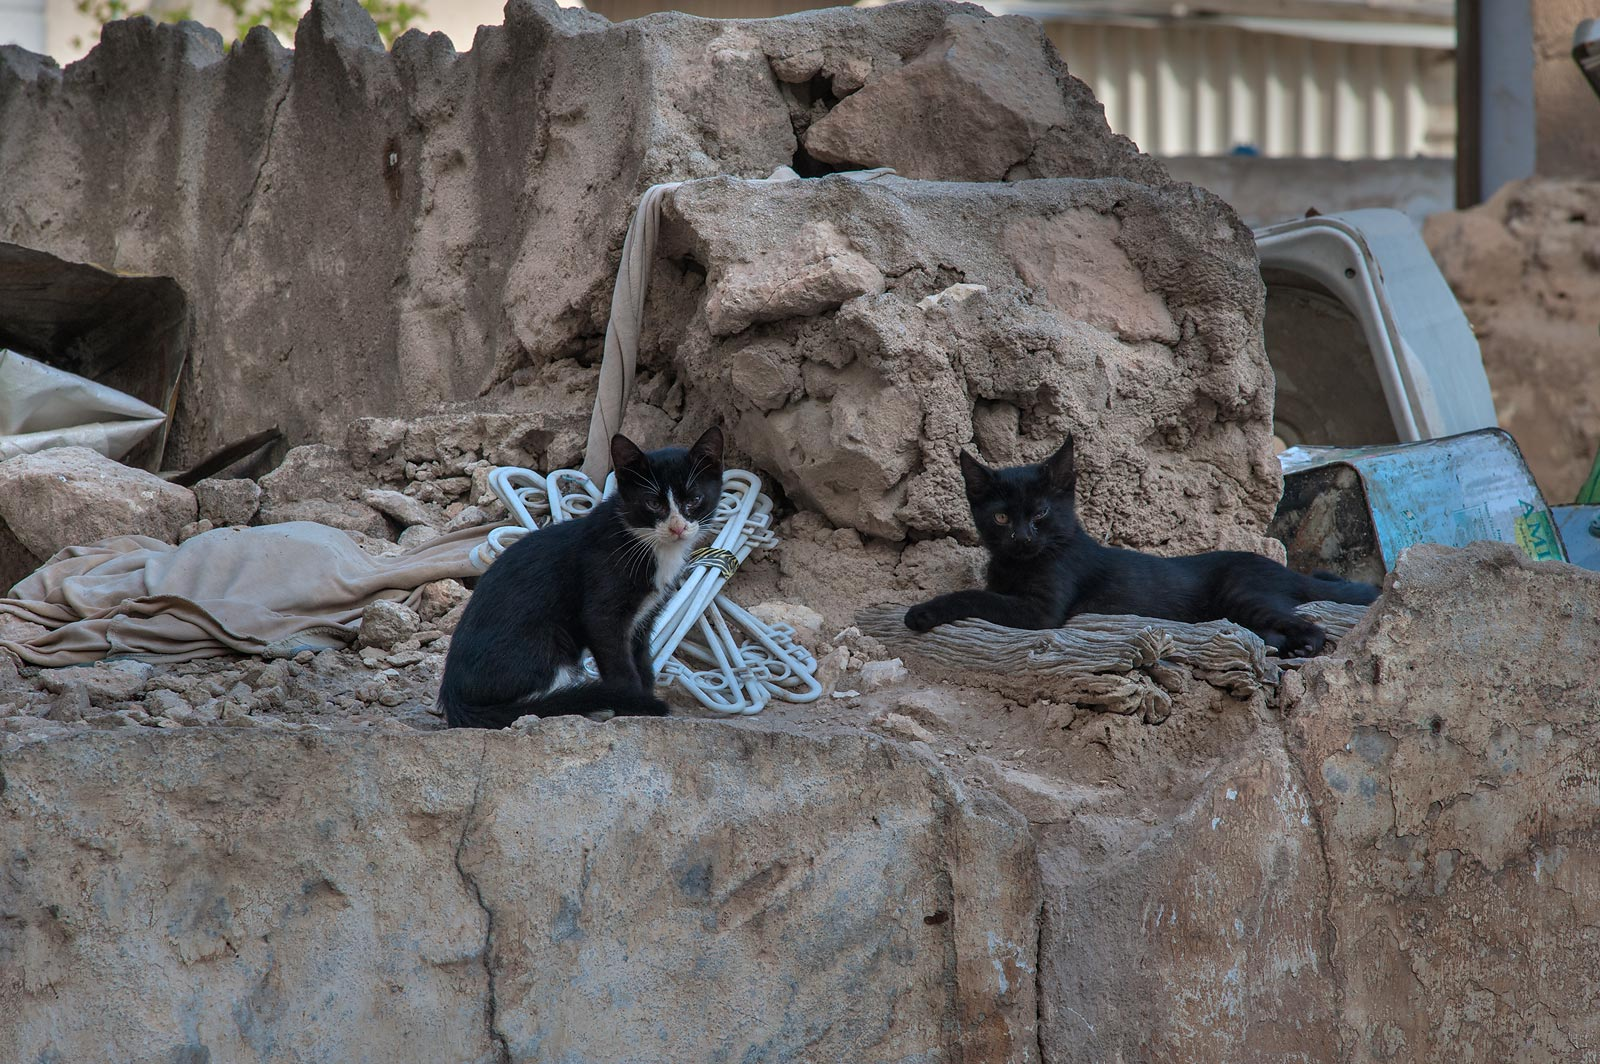 Family of black cats resting on ruins near Al Najada St. in Musheirib area. Doha, Qatar